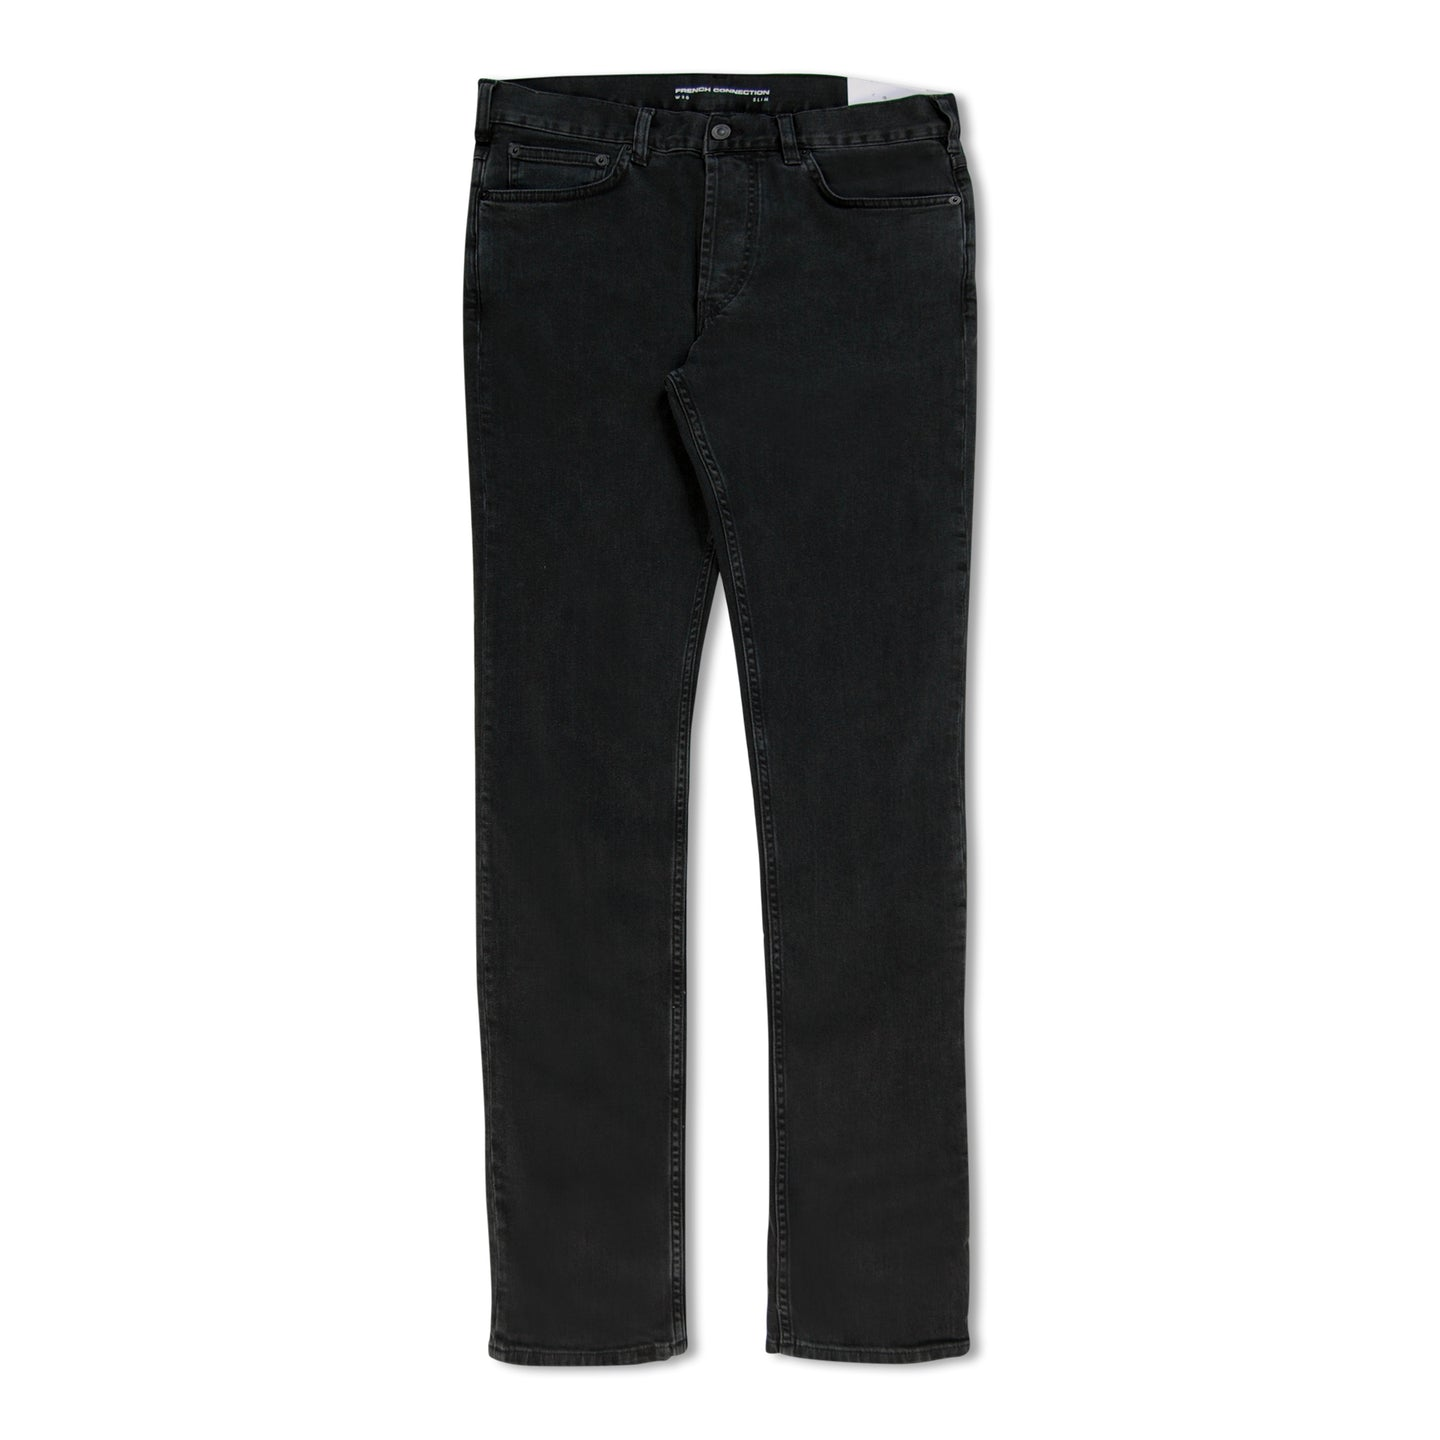 French Connection Slim Jeans - Dark Grey